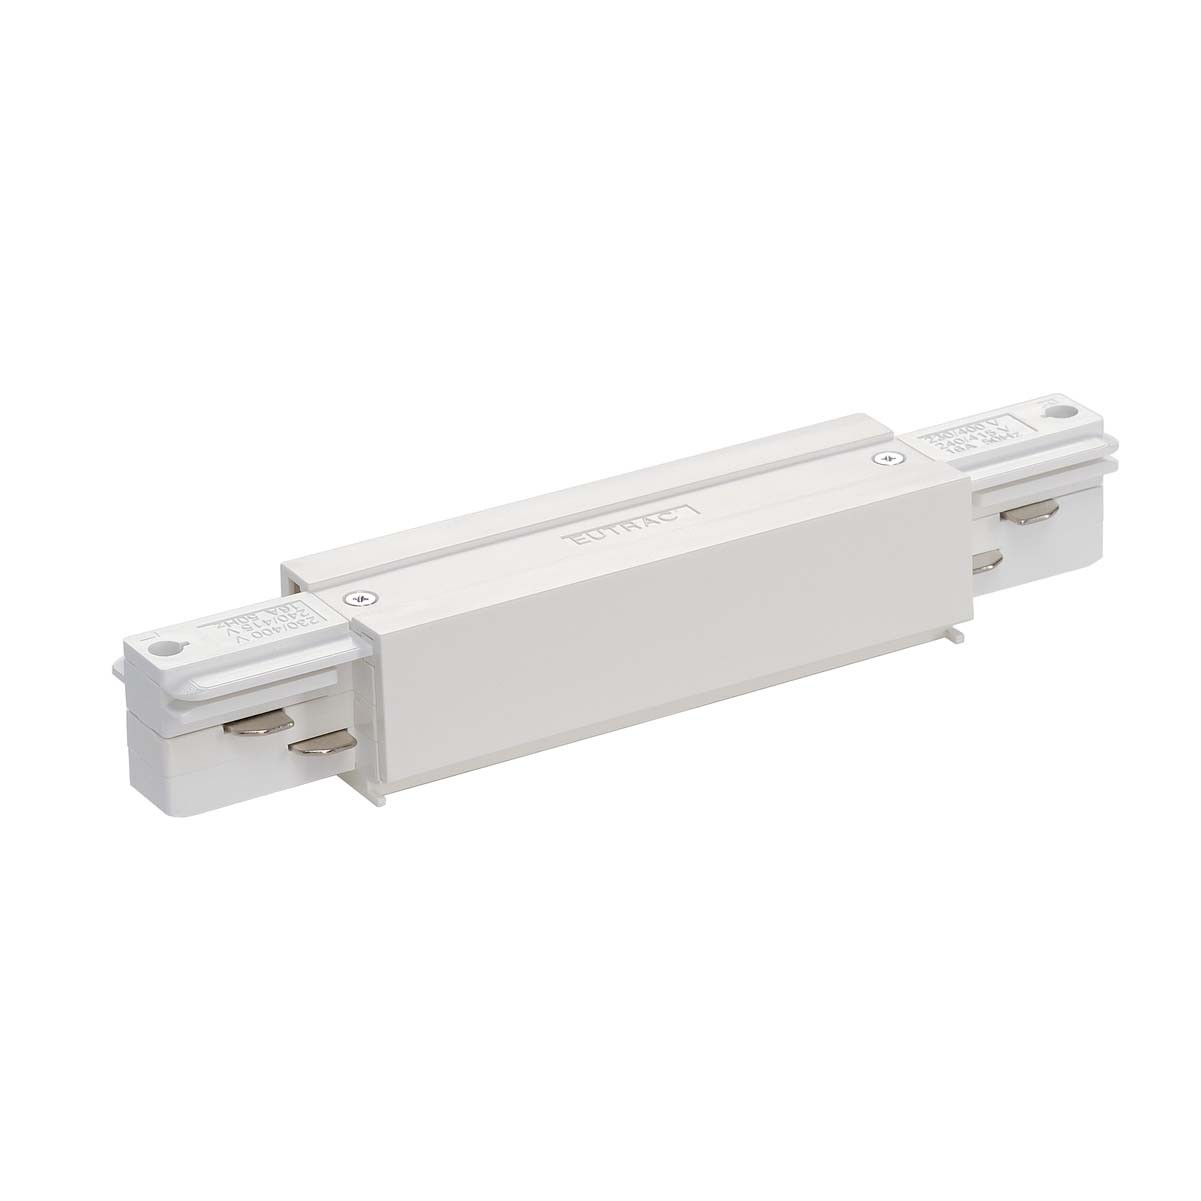 SLV 145661 Straight Coupler With Feed White Eutrac 3 Circuit 240V Surface Track Accessory